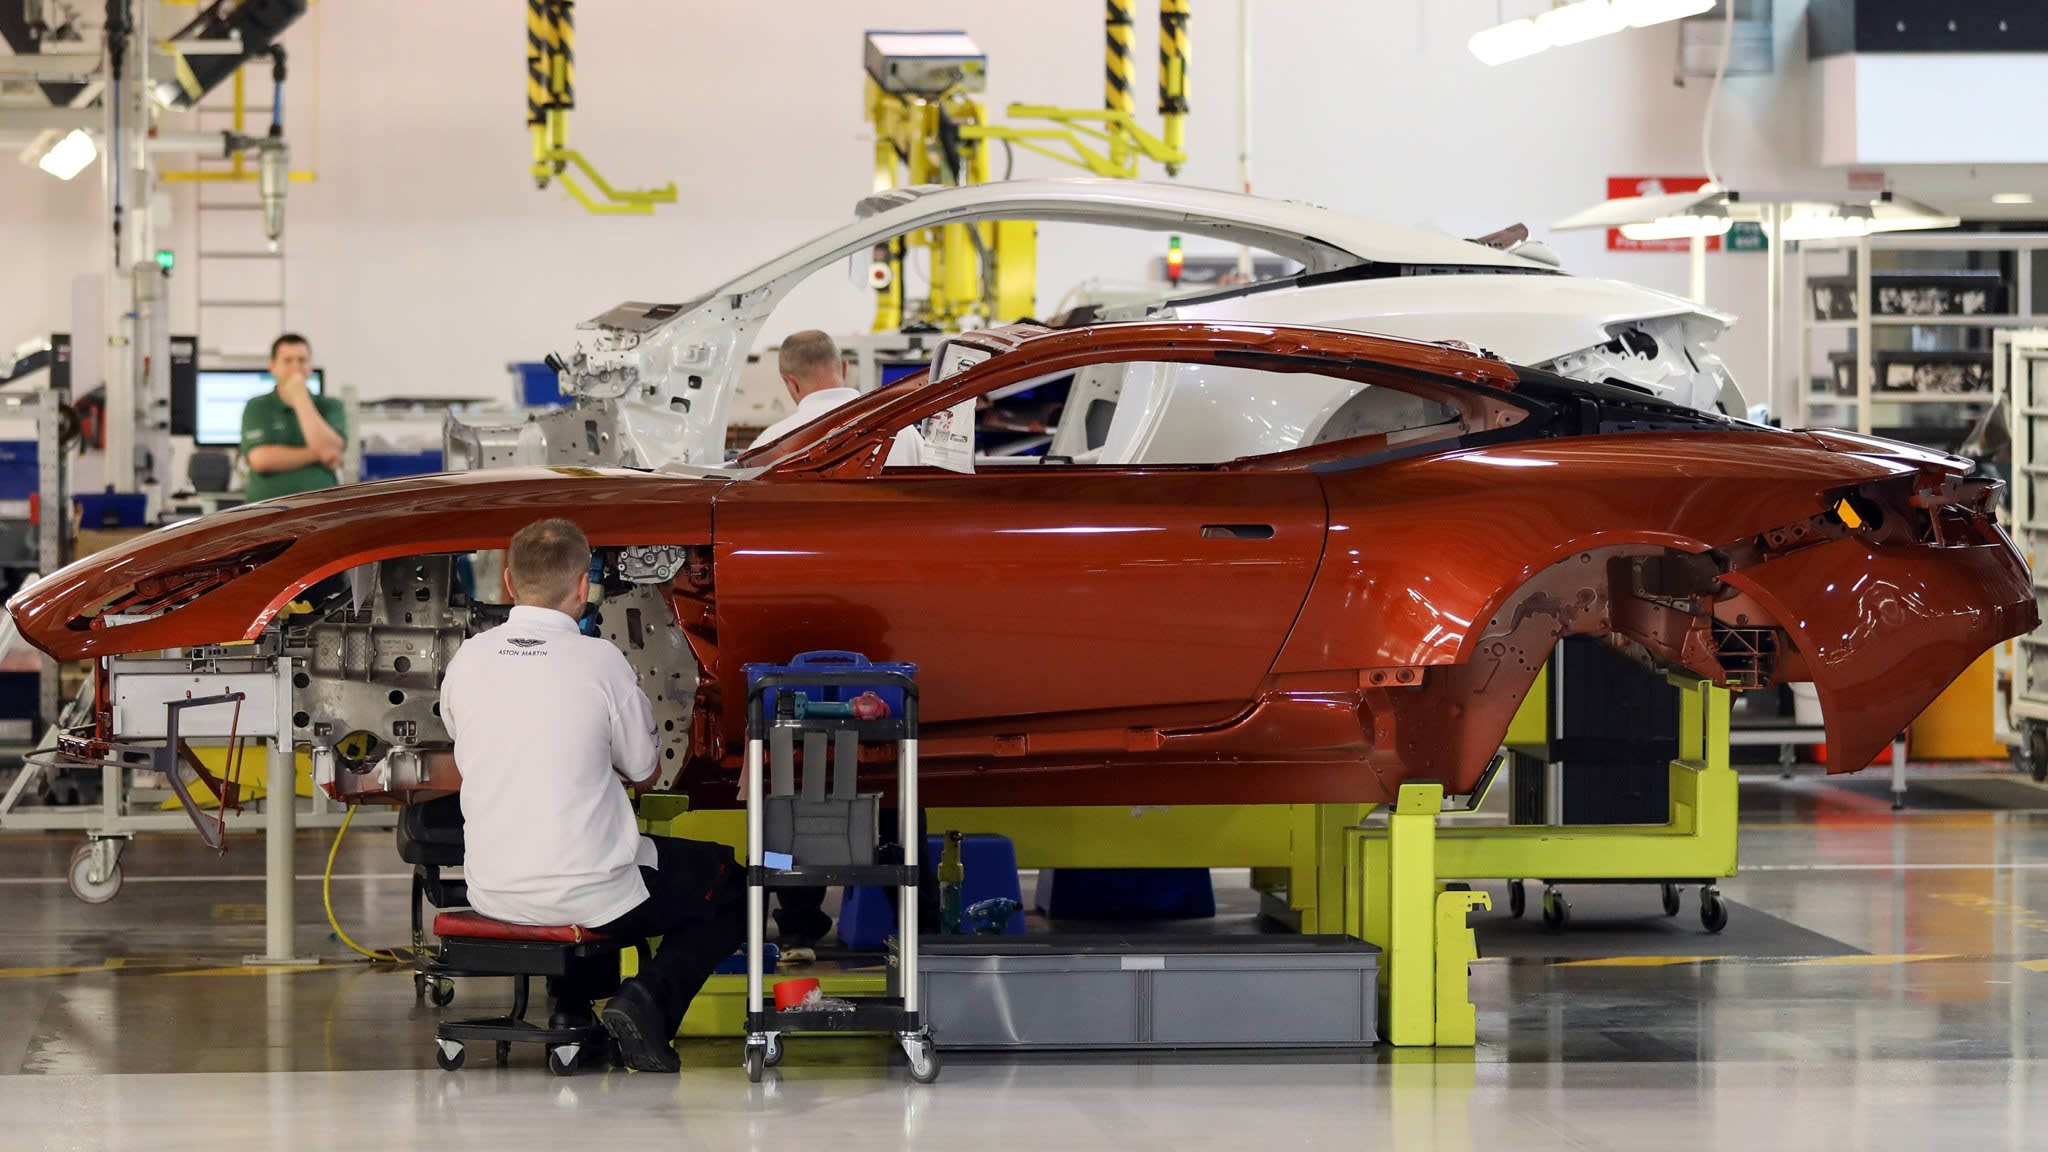 Aston Martin seeks valuation of up to £5bn in London IPO